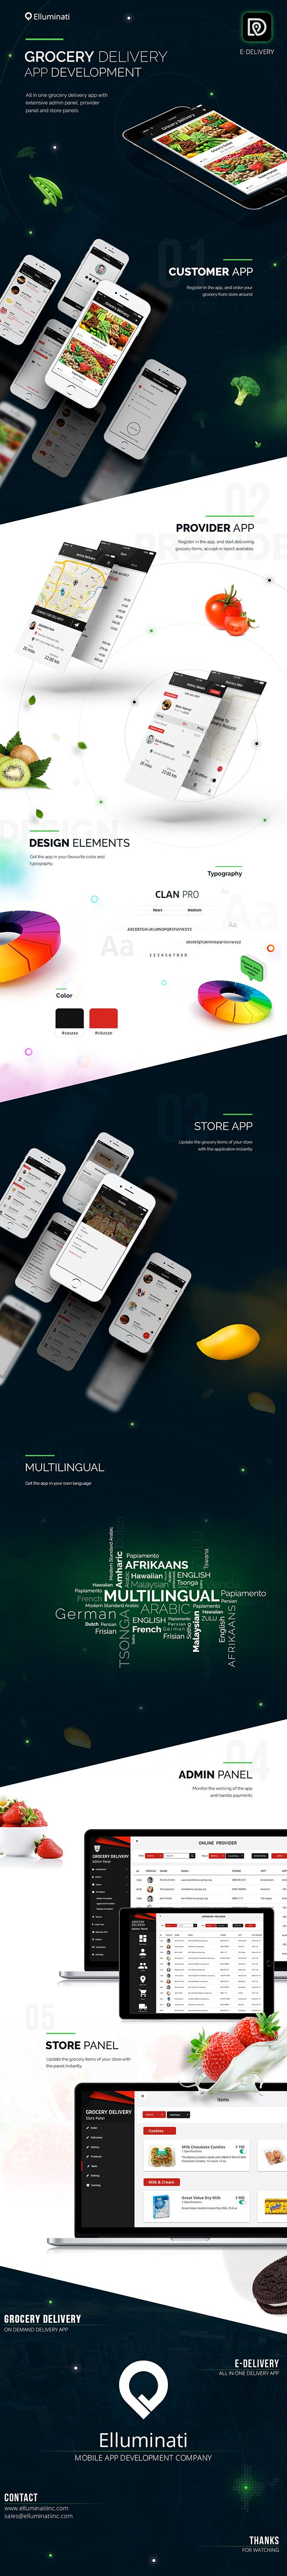 Grocery Delivery App Development. Start Your Grocery Delivery Business Online With our on demand grocery delivery app development solution.